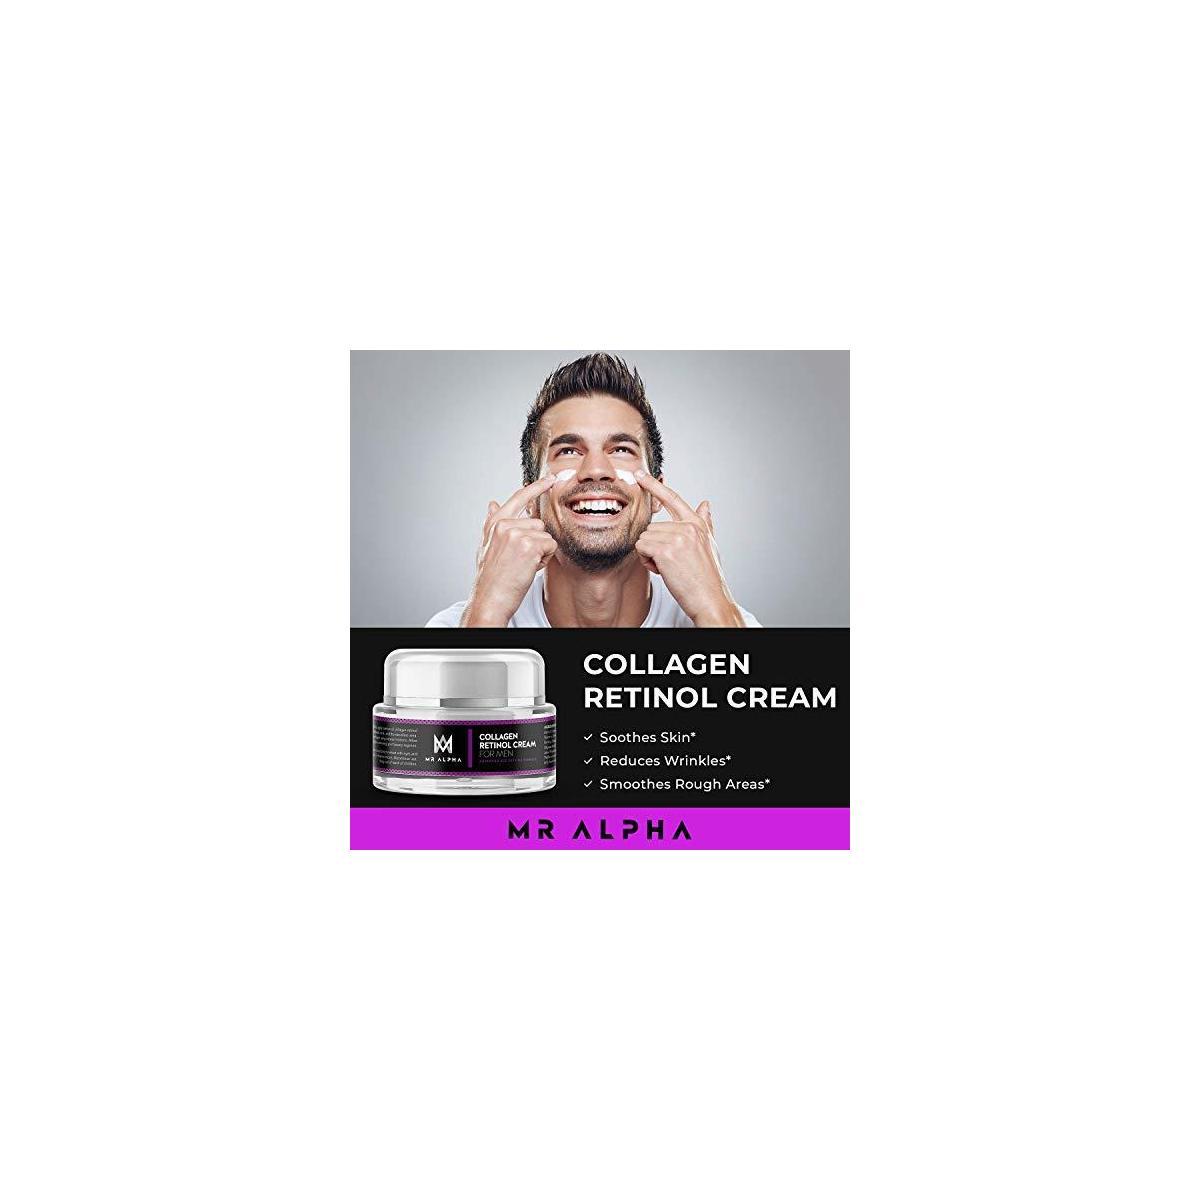 MR ALPHA Collagen Retinol Cream for Men